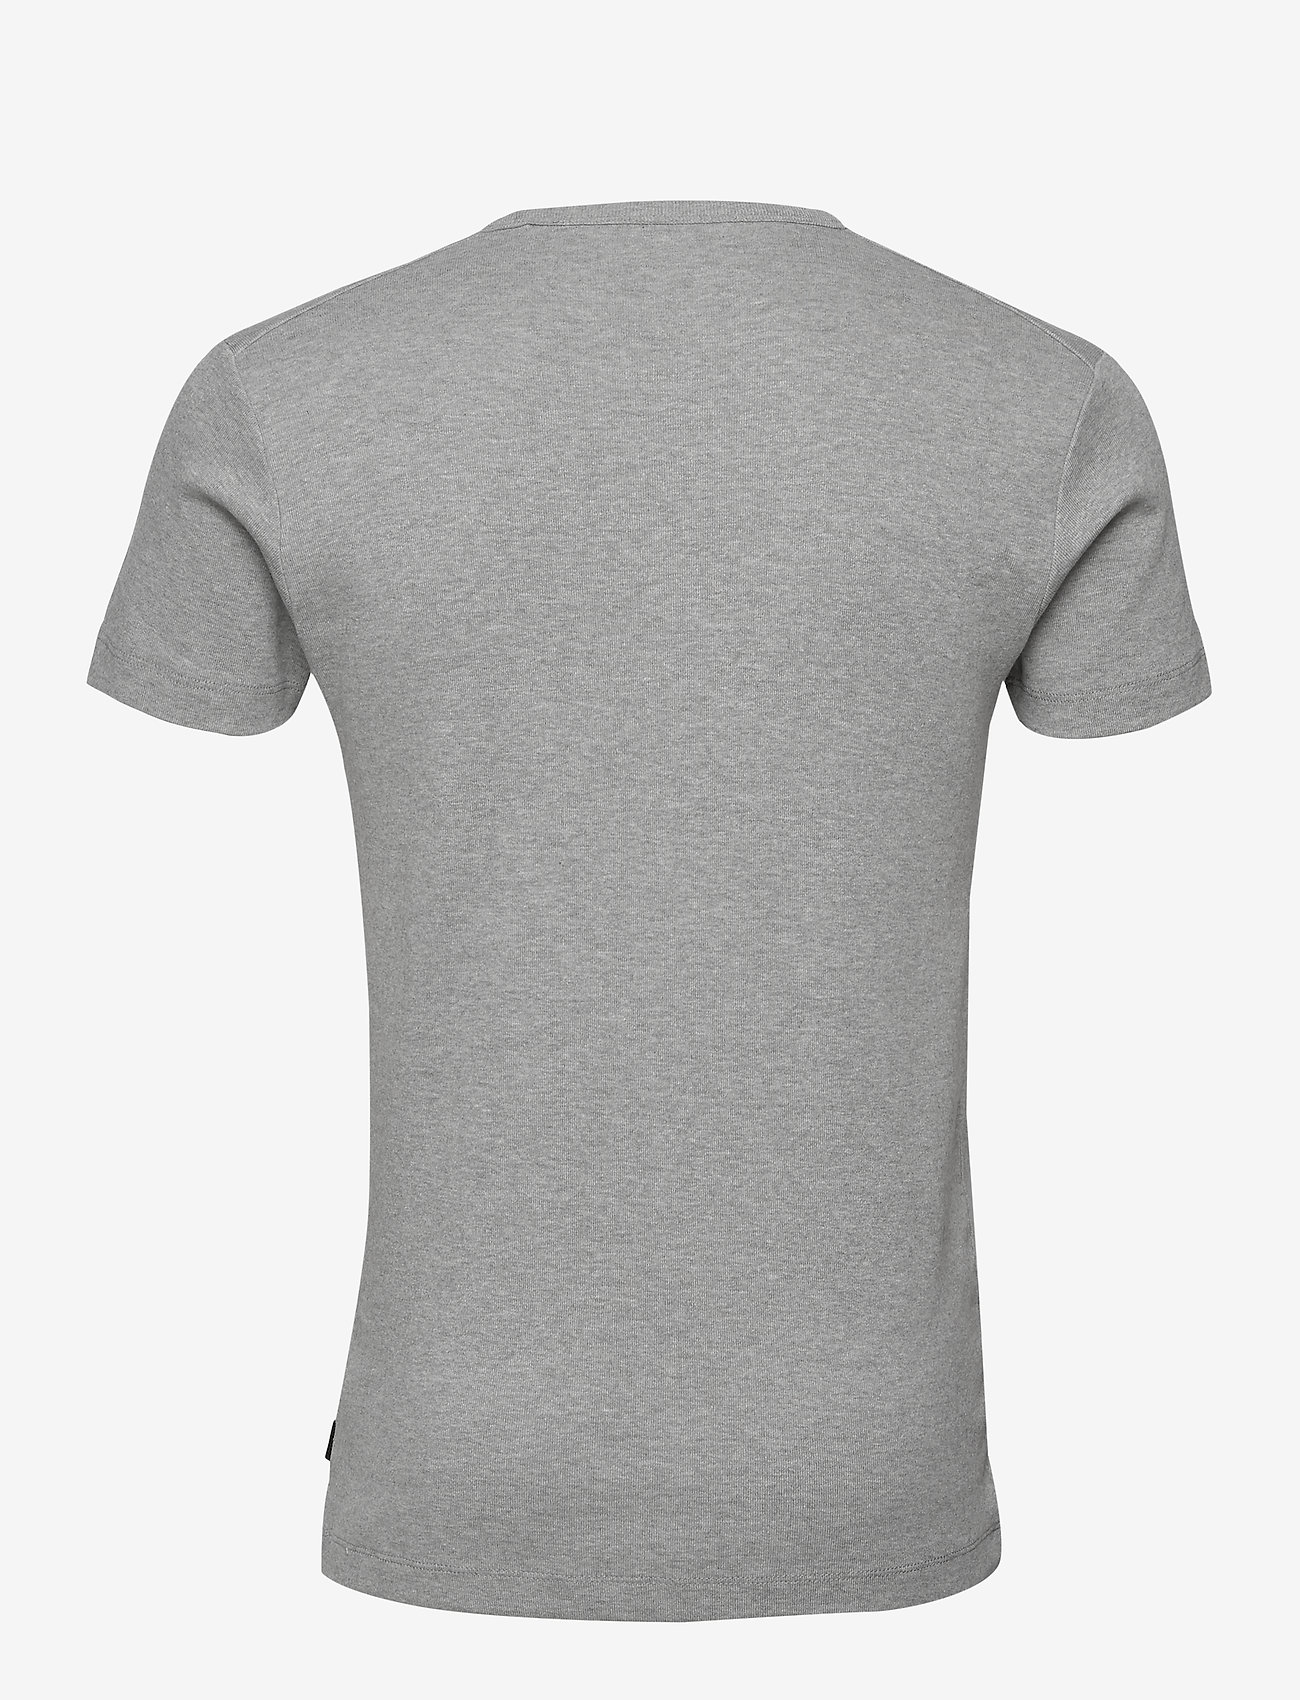 Esprit Casual - T-Shirts - basic t-shirts - medium grey 5 - 1